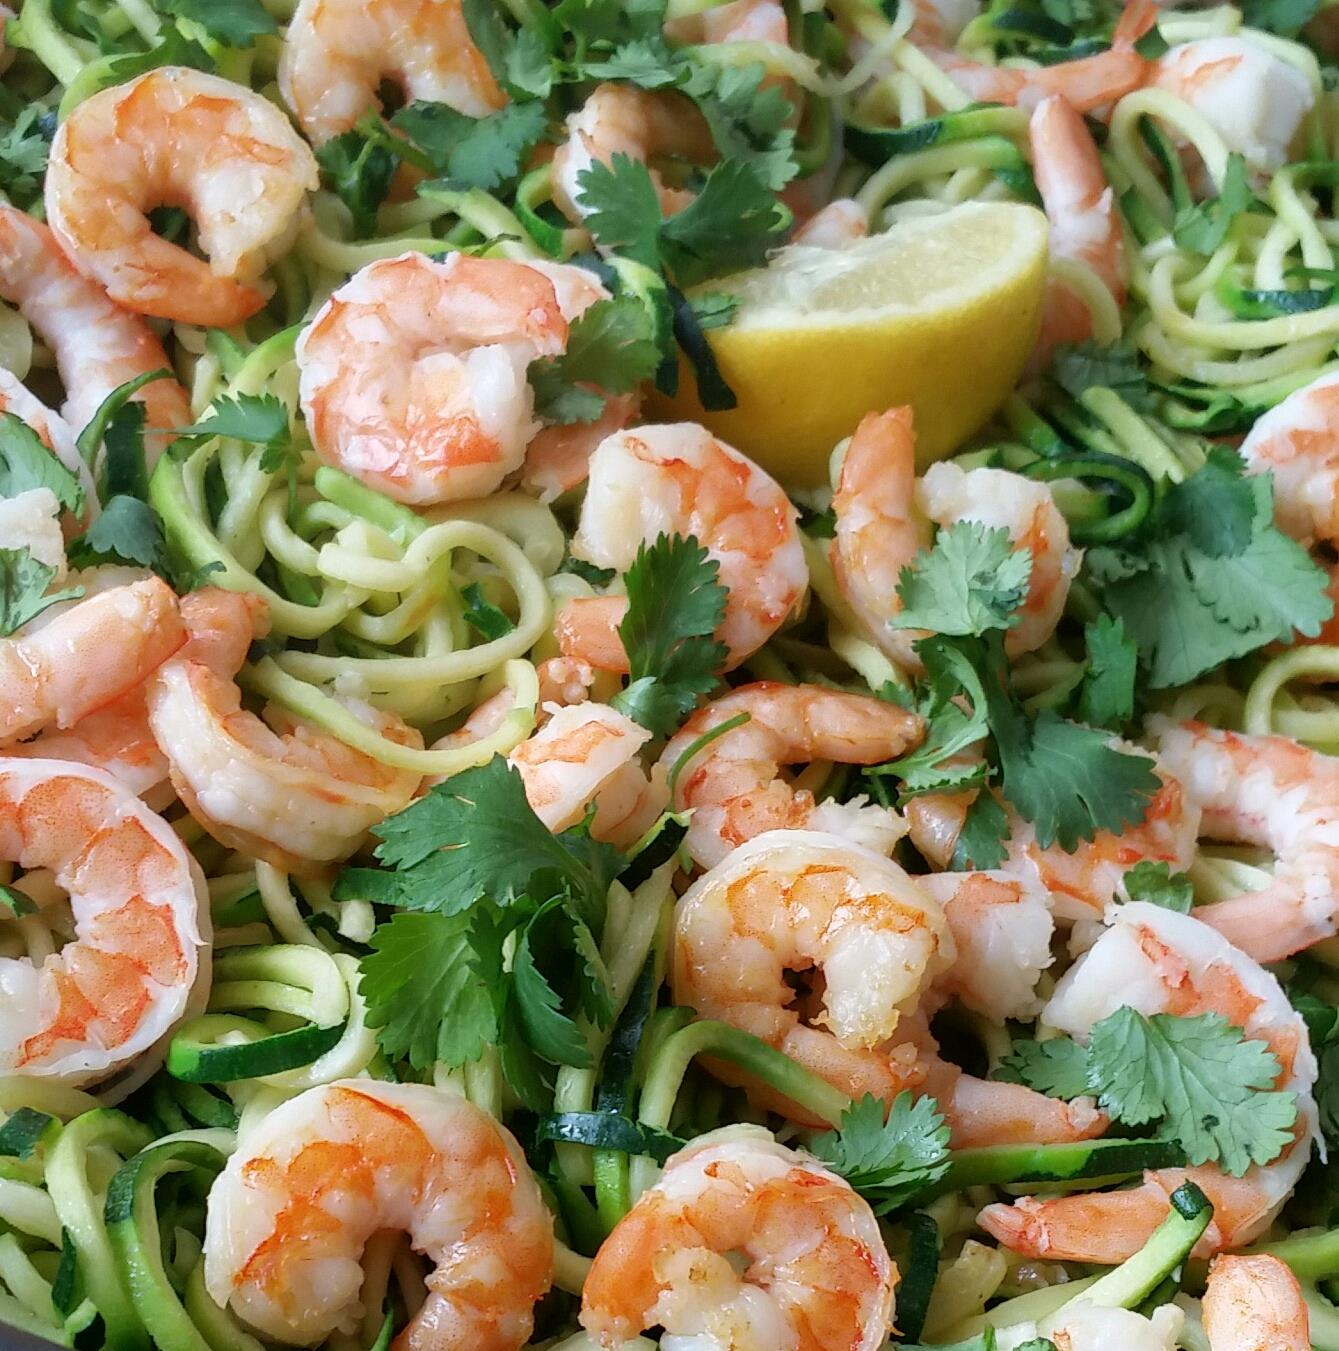 Creative Clean Dinners Shrimp Zoodles with Cilantro and Garlic https://cleanfoodcrush.com/shrimp-zoodles